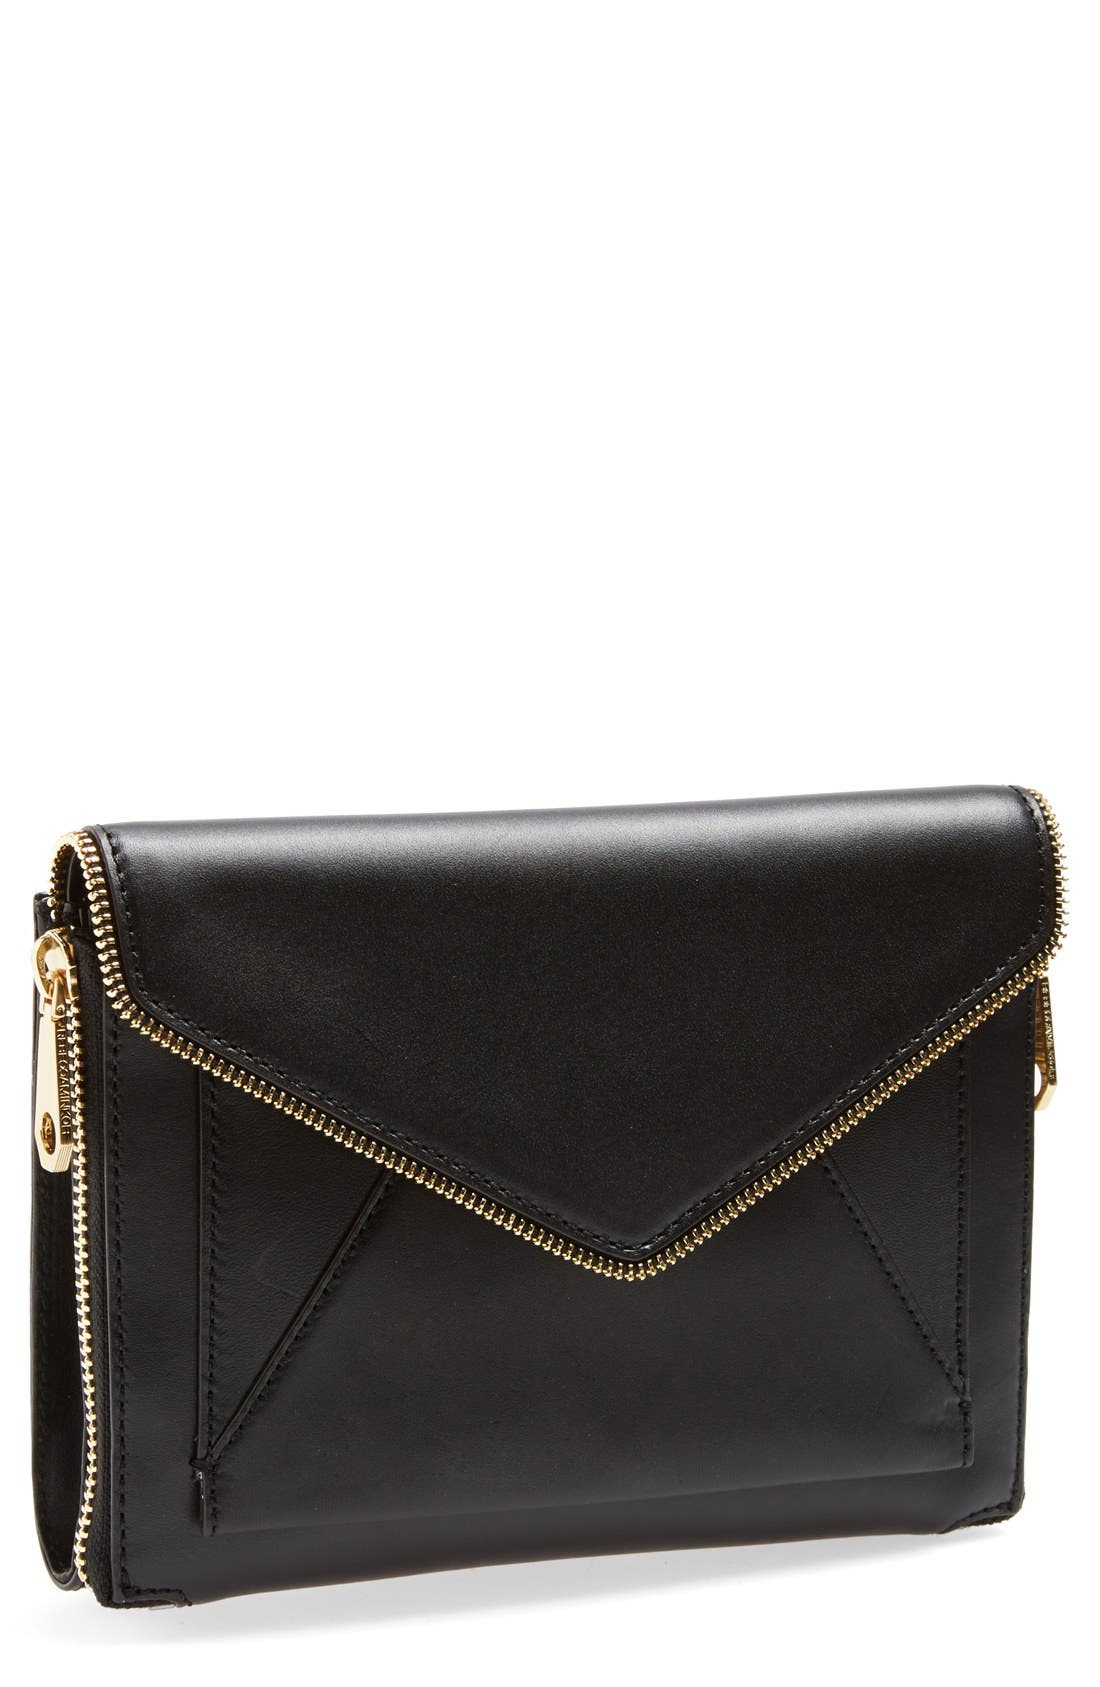 Main Image - Rebecca Minkoff 'Mini Marlowe' Clutch